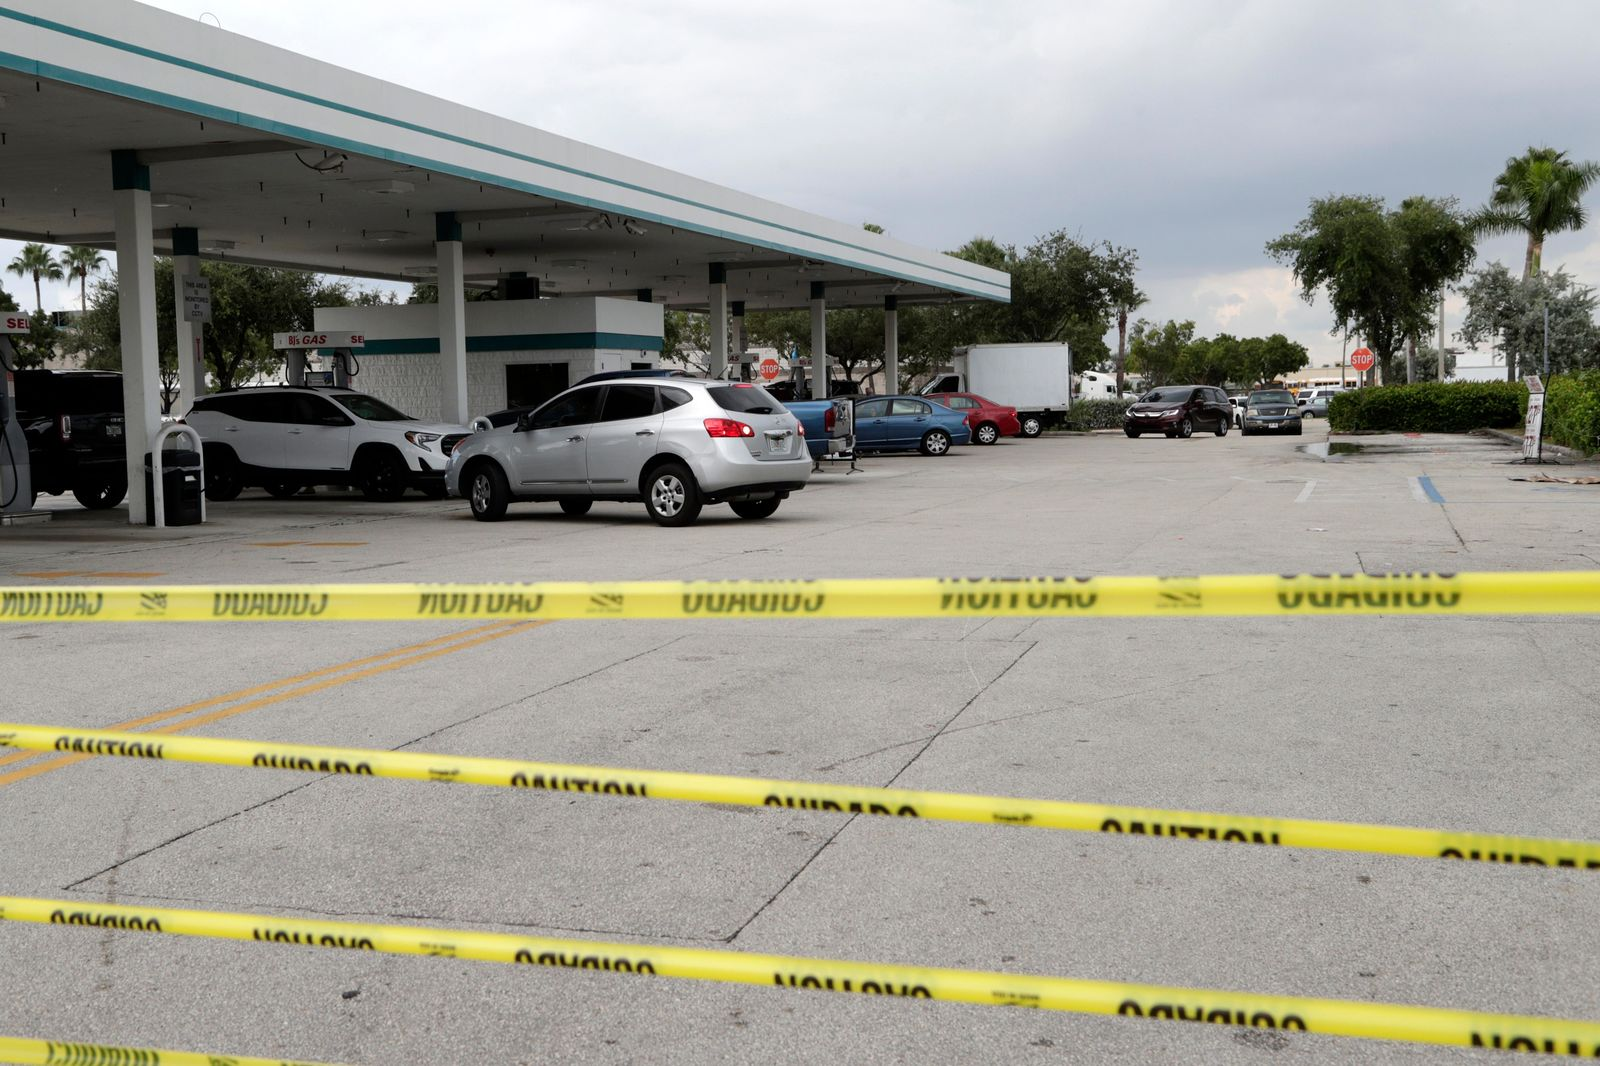 Tape blocks an entrance at BJ's Wholesale Club to control traffic flow as motorists line up for fuel in preparation for Hurricane Dorian, Thursday, Aug. 29, 2019, in Hialeah, Fla. (AP Photo/Lynne Sladky)